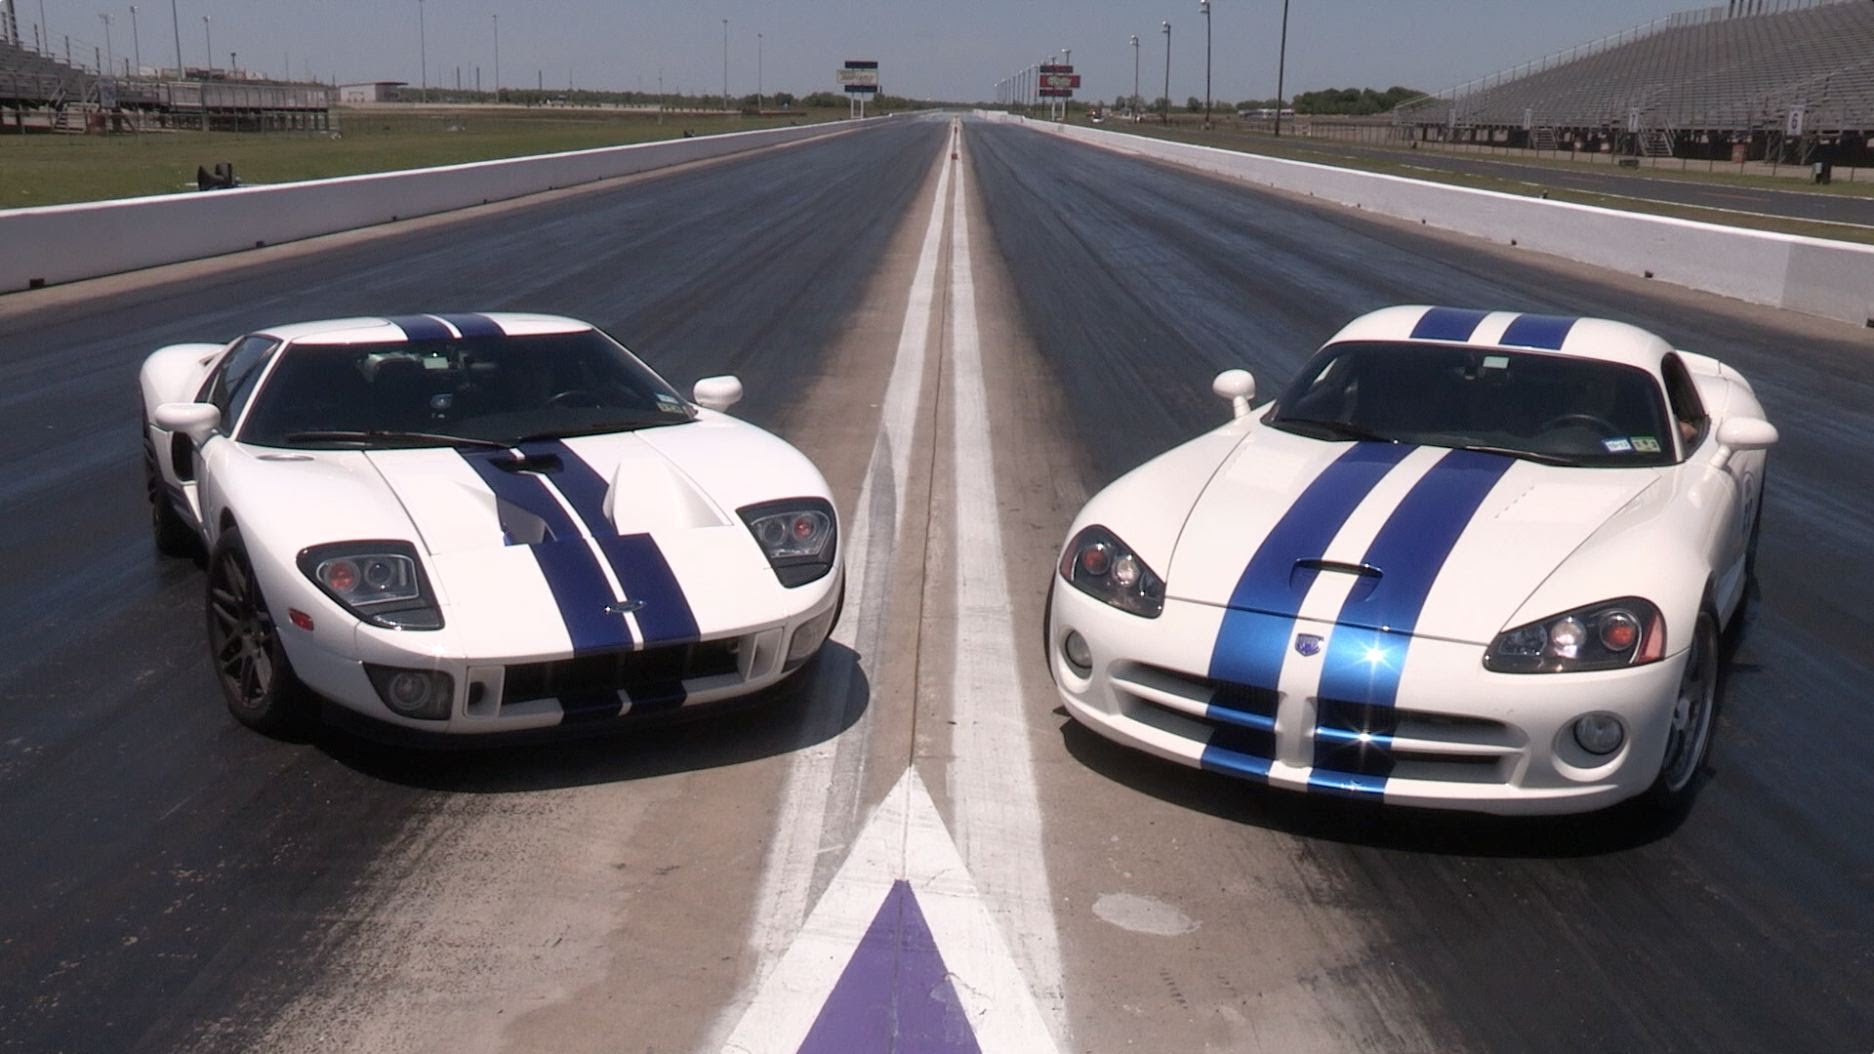 1100hp Ford Gt Vs Viper Drag Race Coyote Mustang And Corvette C6 Z06 Square Off In This Adrenaline